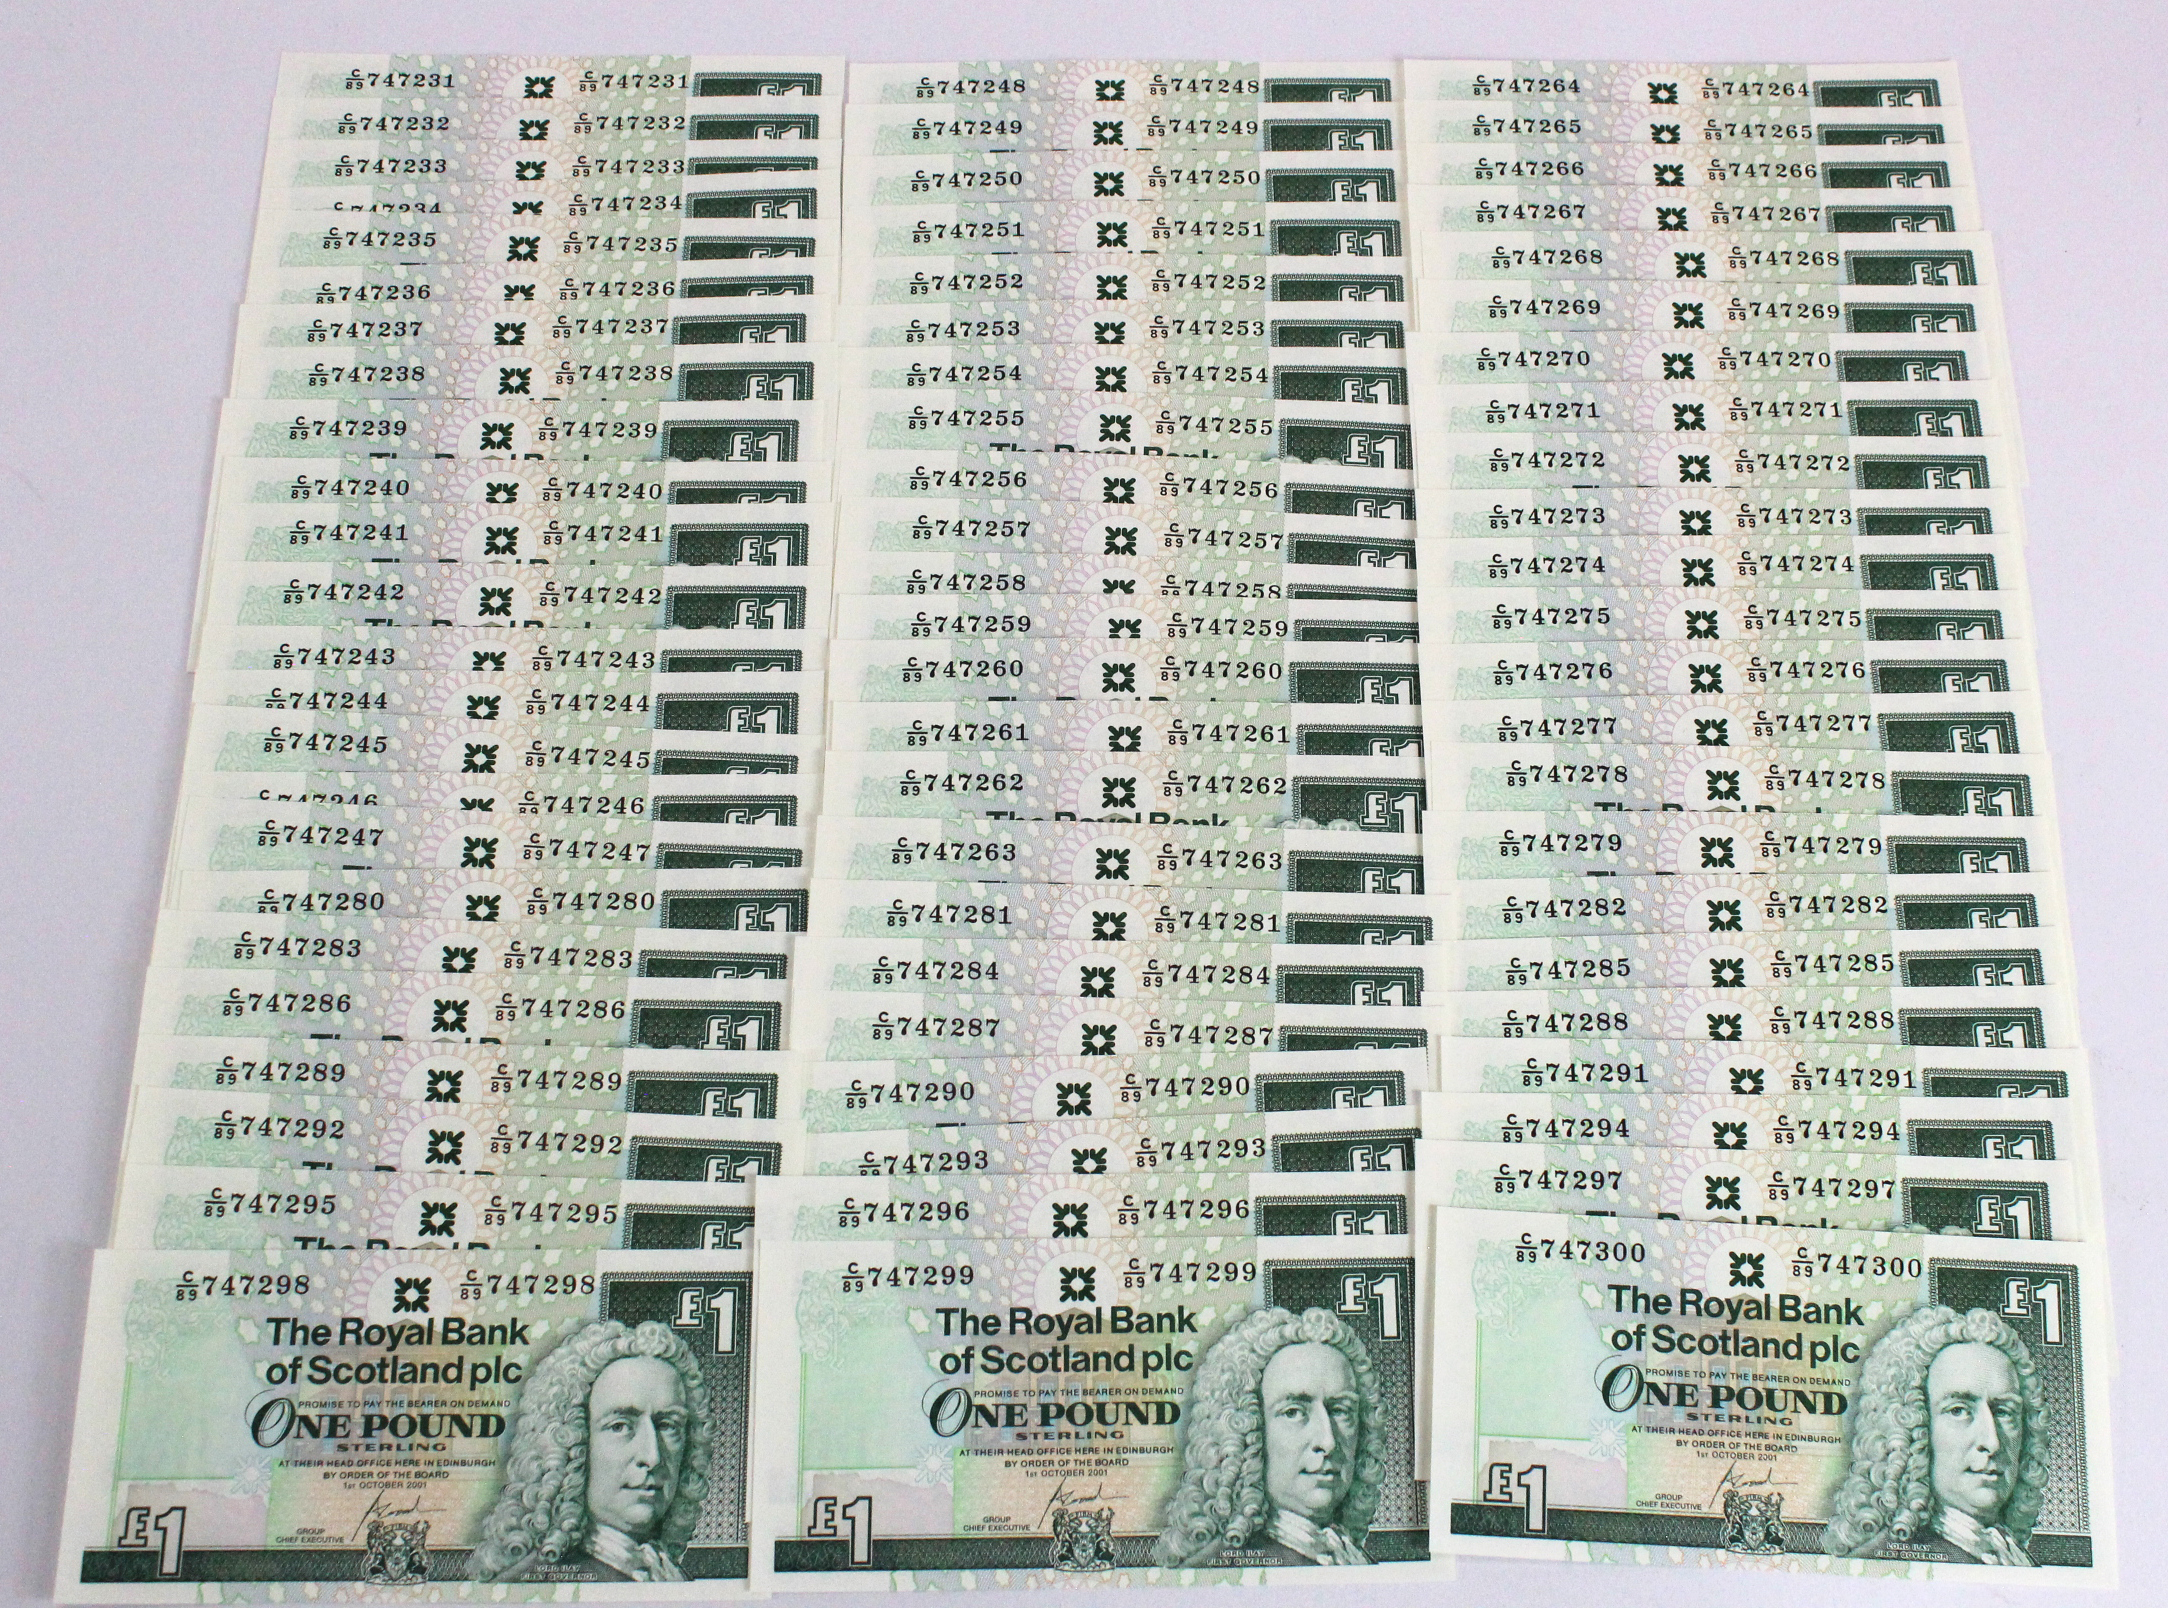 Scotland, Royal Bank of Scotland 1 Pound (70) dated 1st October 2001, a bundle of consecutively